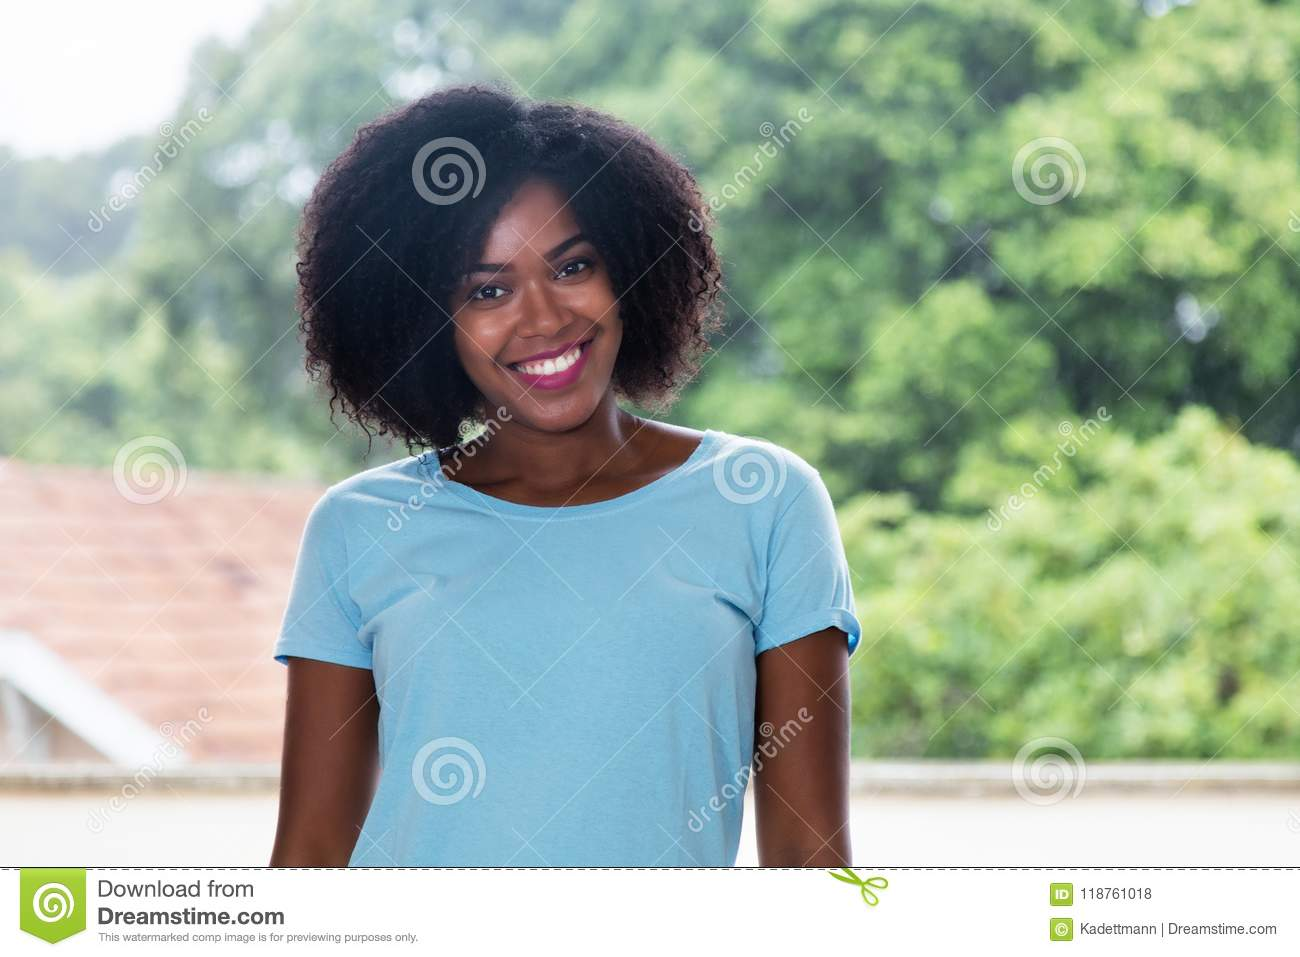 Download Portrait Of A Beautiful African American Woman Stock Photo - Image of colombian, hispanic: 118761018